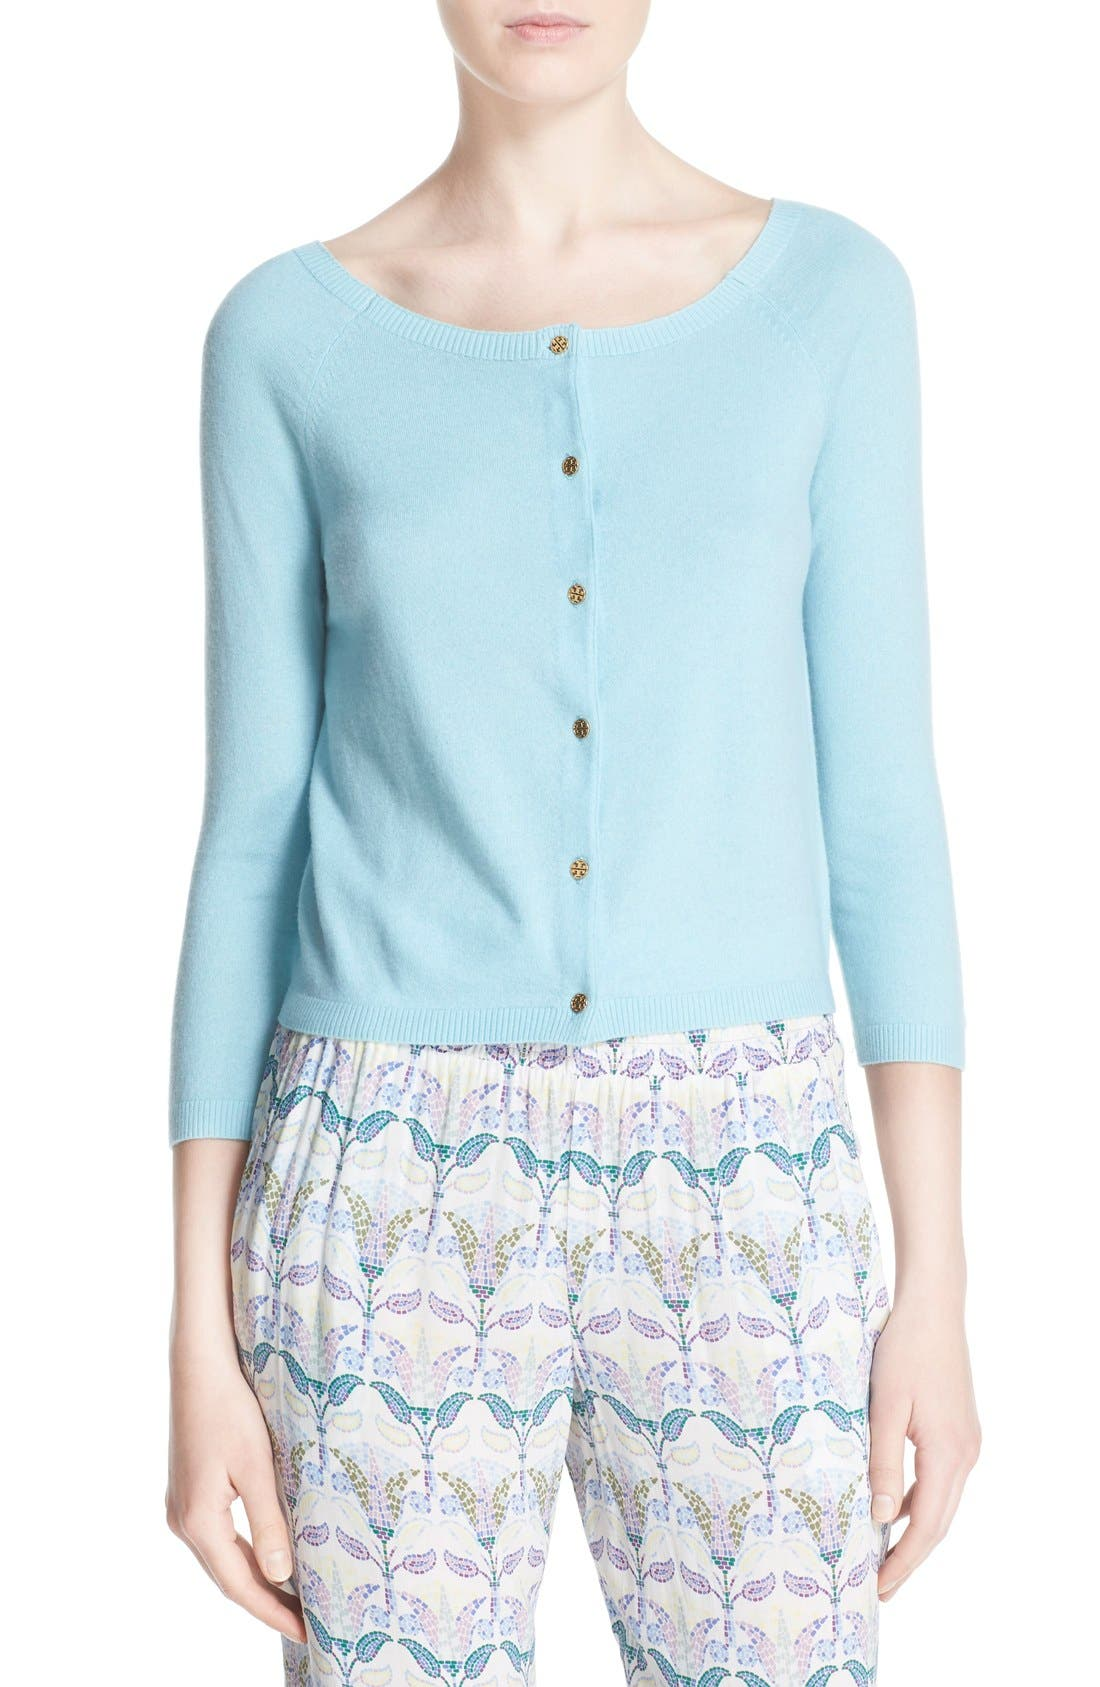 Alternate Image 1 Selected - Tory Burch 'Rosemary' Cashmere Cardigan